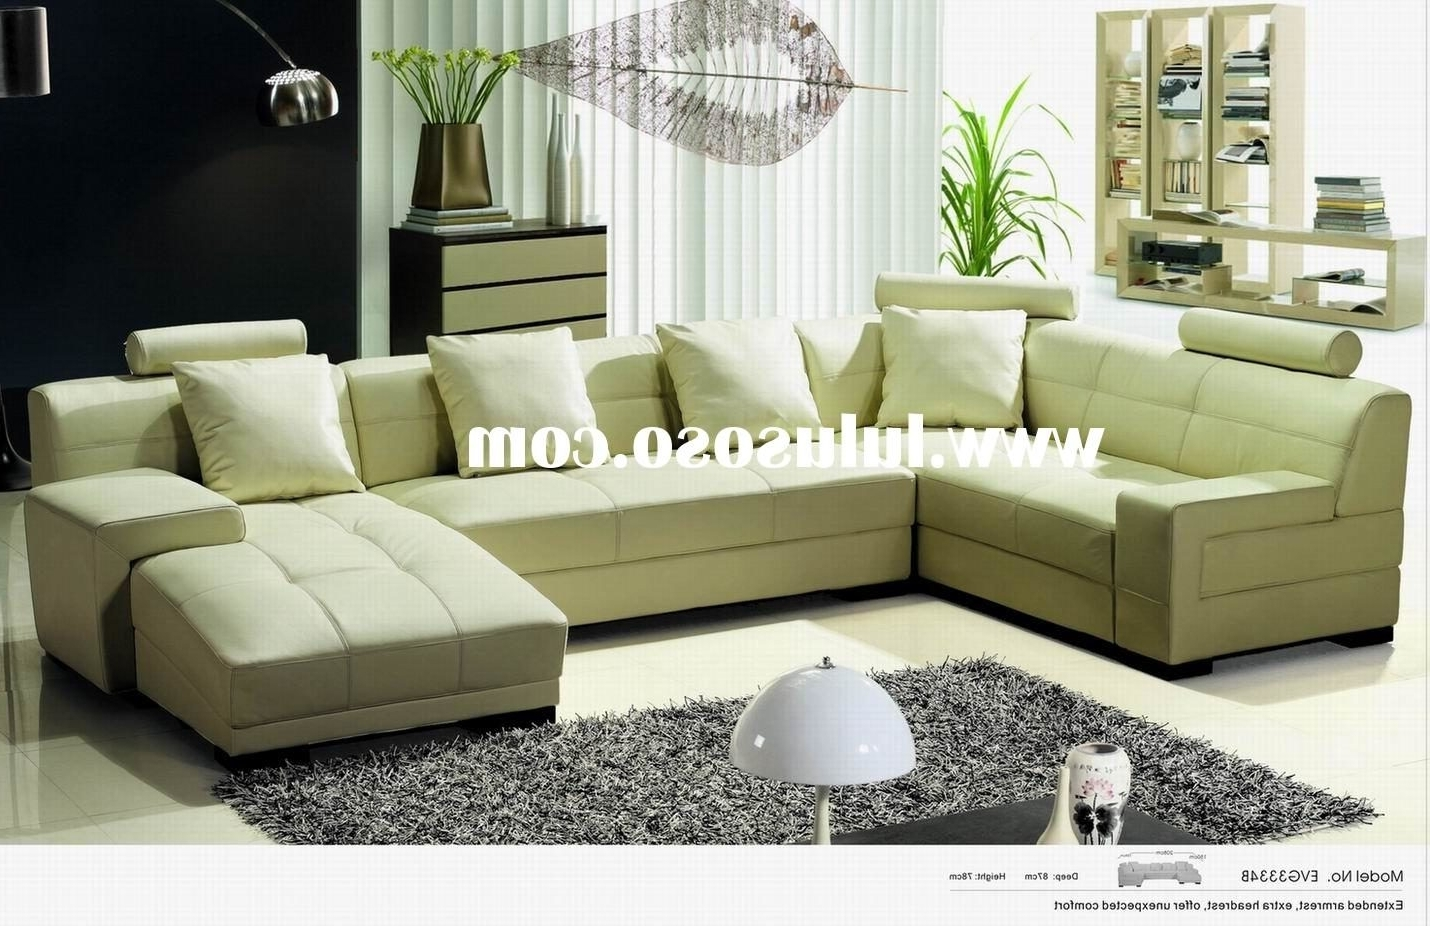 Living Room Sofa Set Designs For Small With Price Furniture Brand With Newest Living Room Sofa Chairs (View 9 of 20)